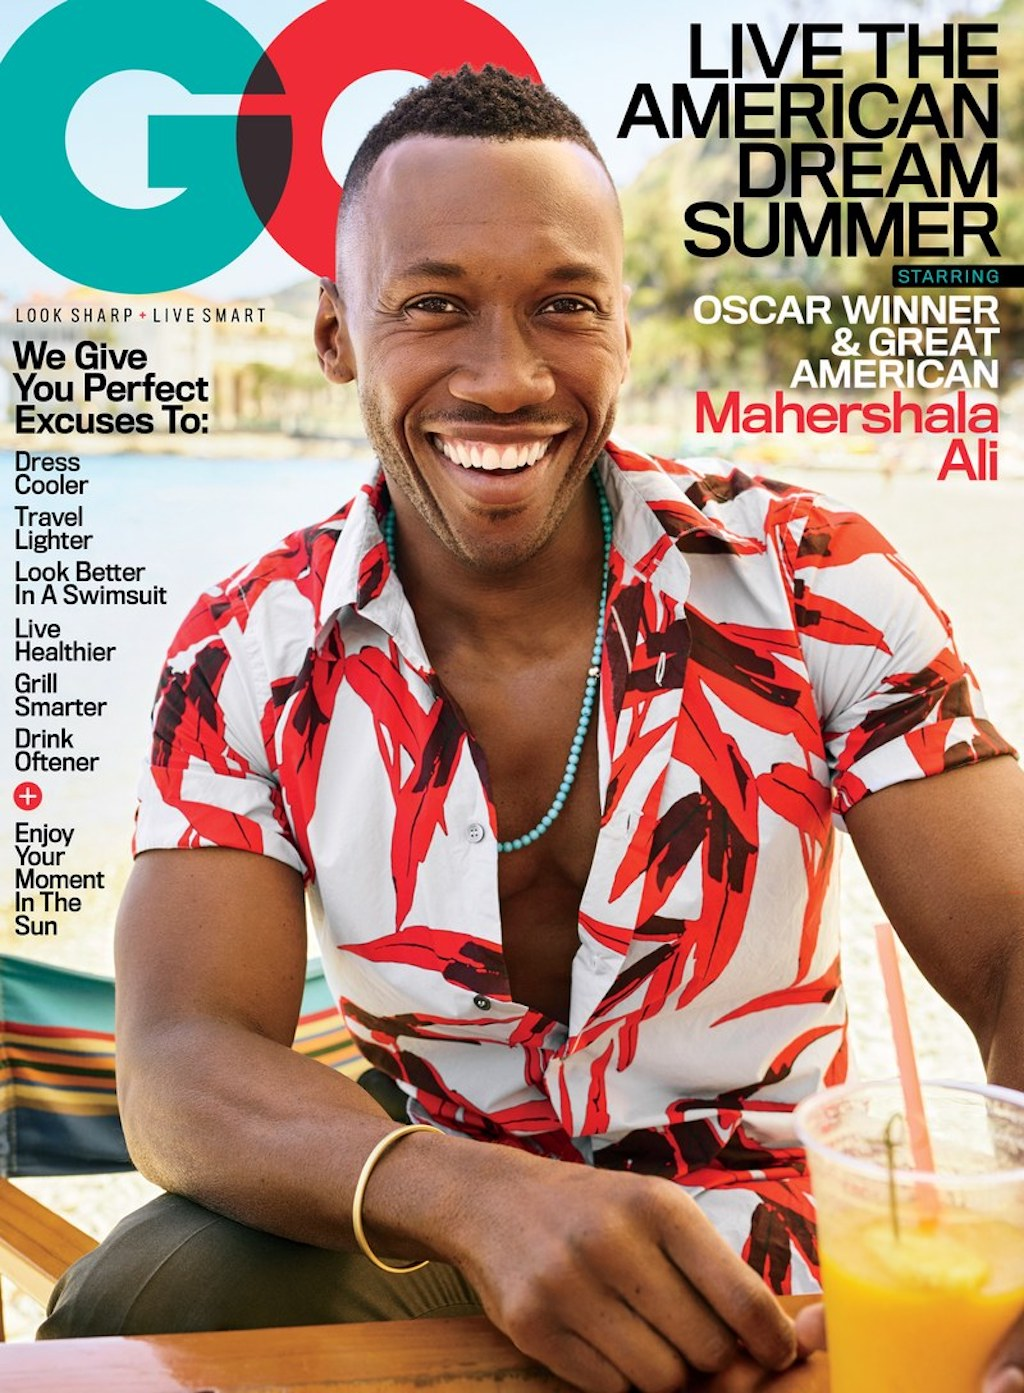 Mahershala Ali, African American Actor, Black Actor, Black Cinema, KOLUMN Magazine, KOLUMN